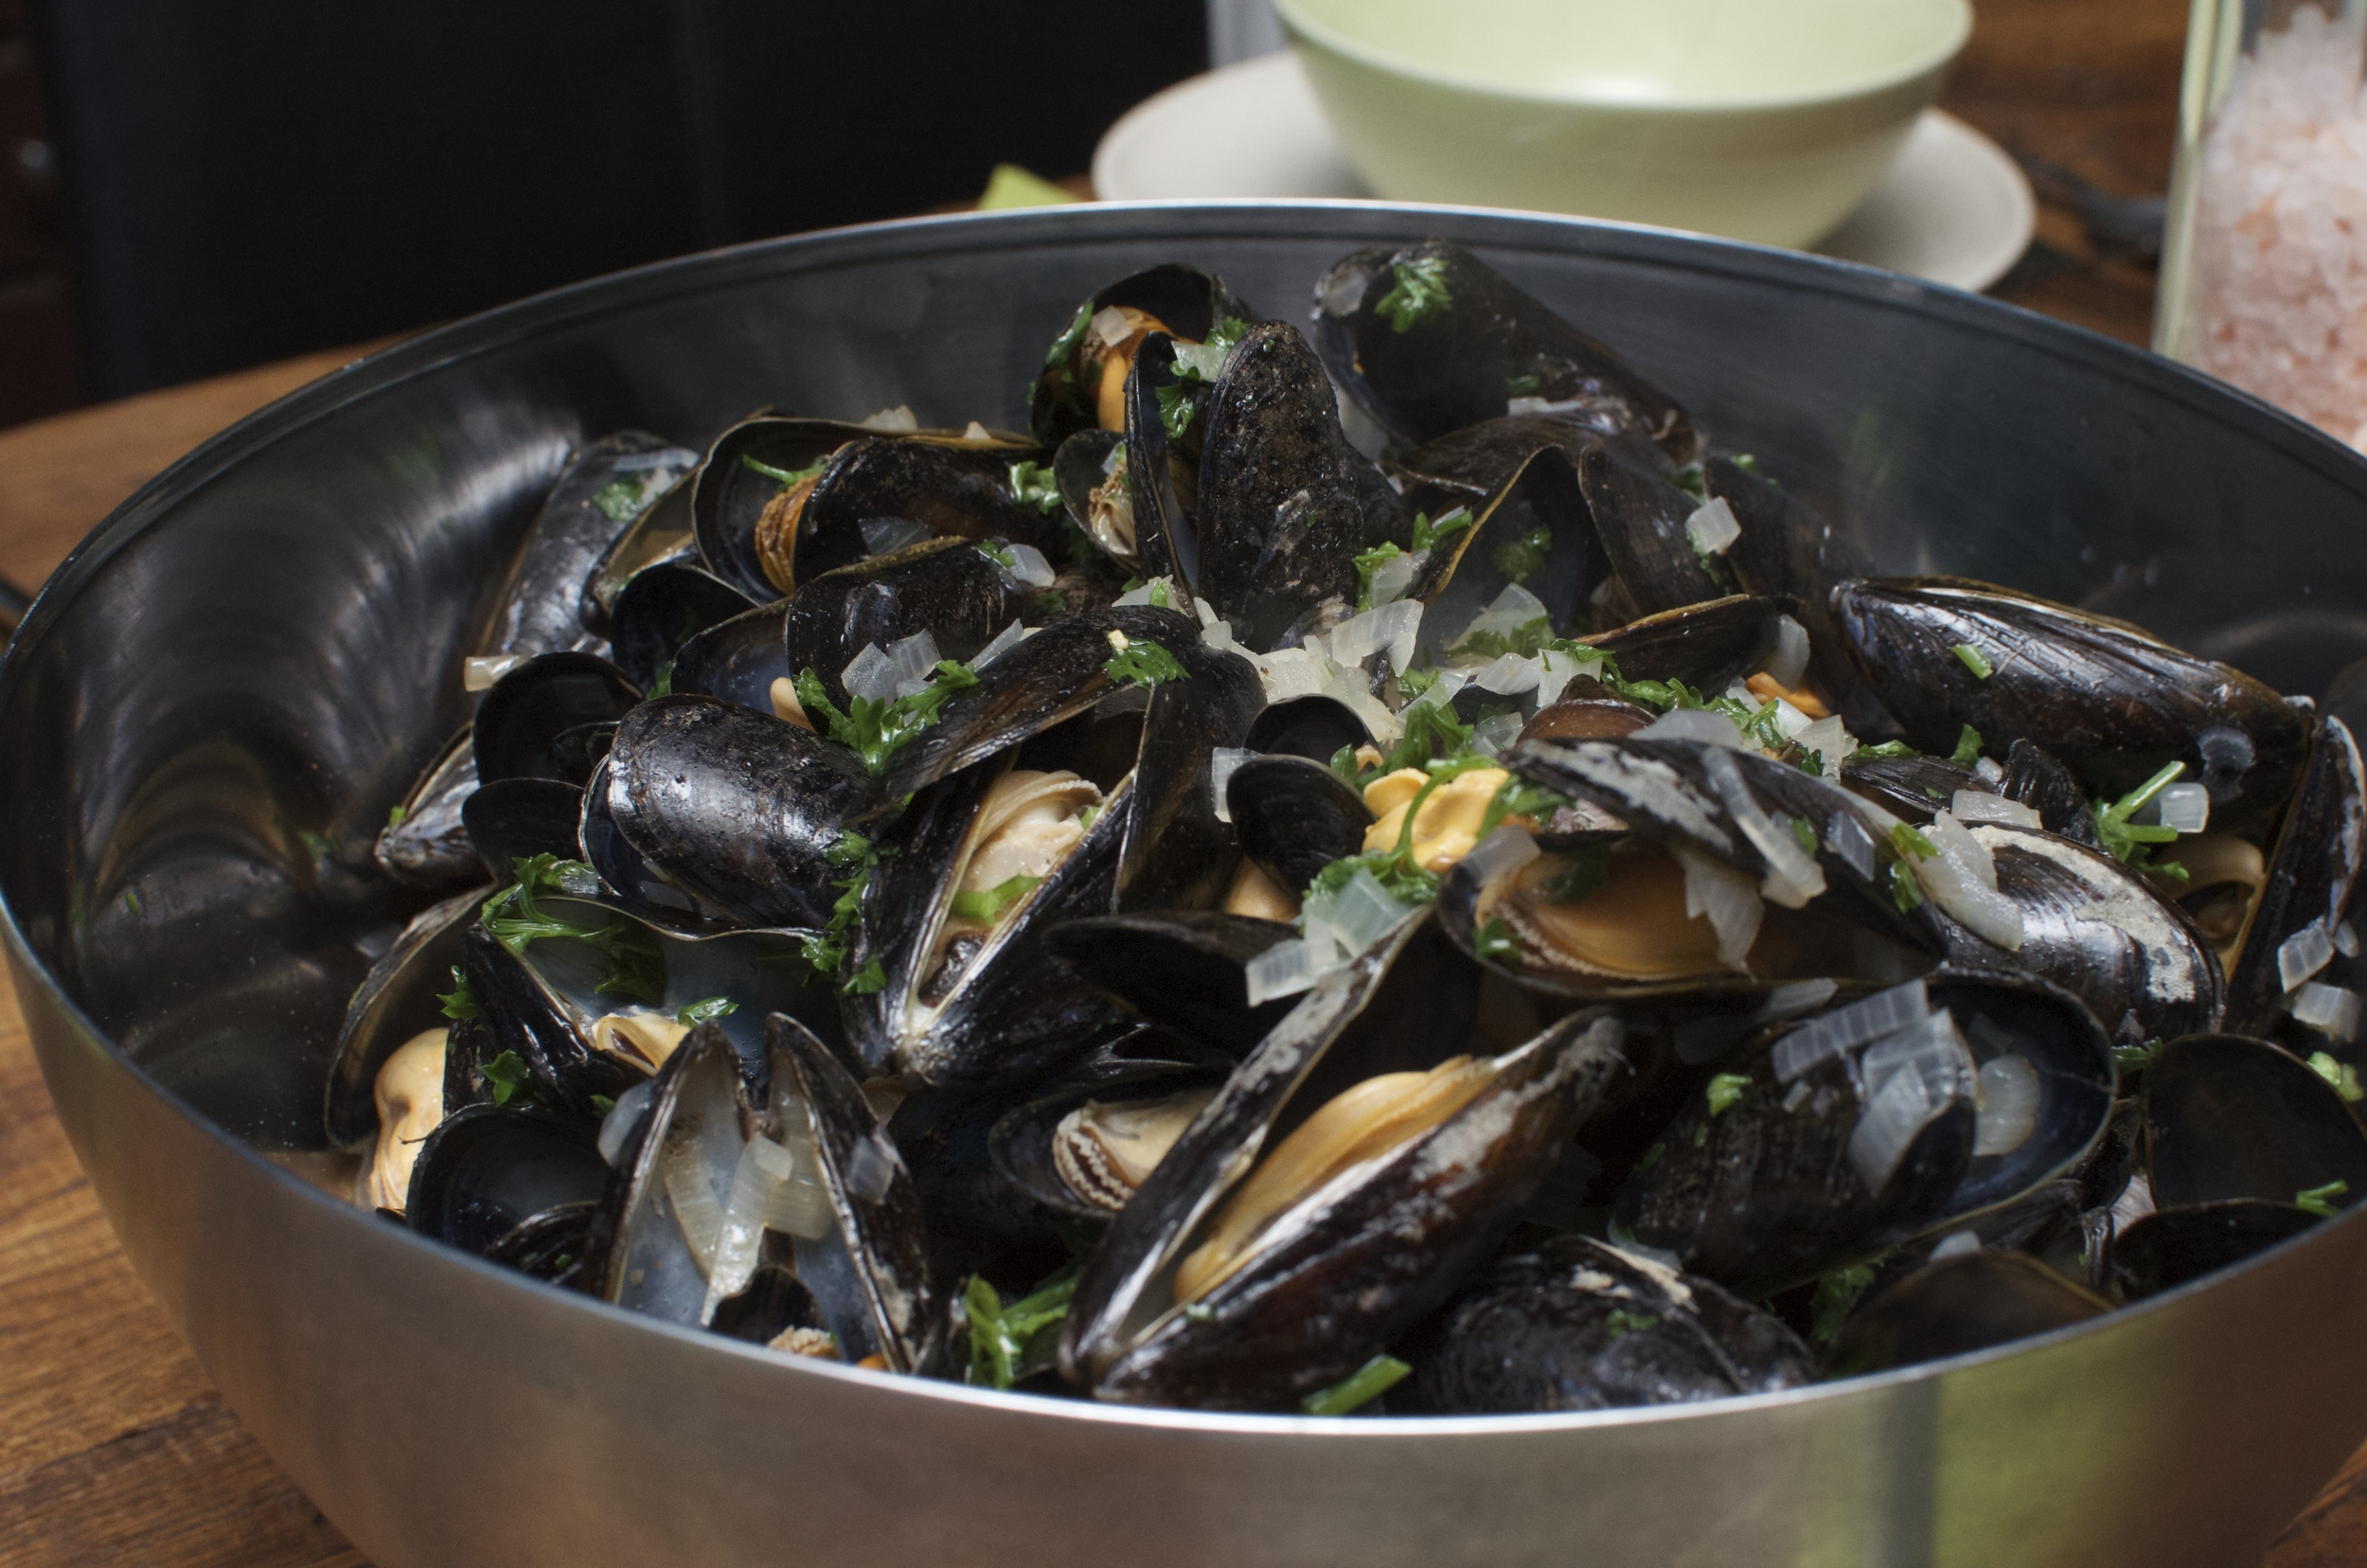 Mussels in cider and pimenton